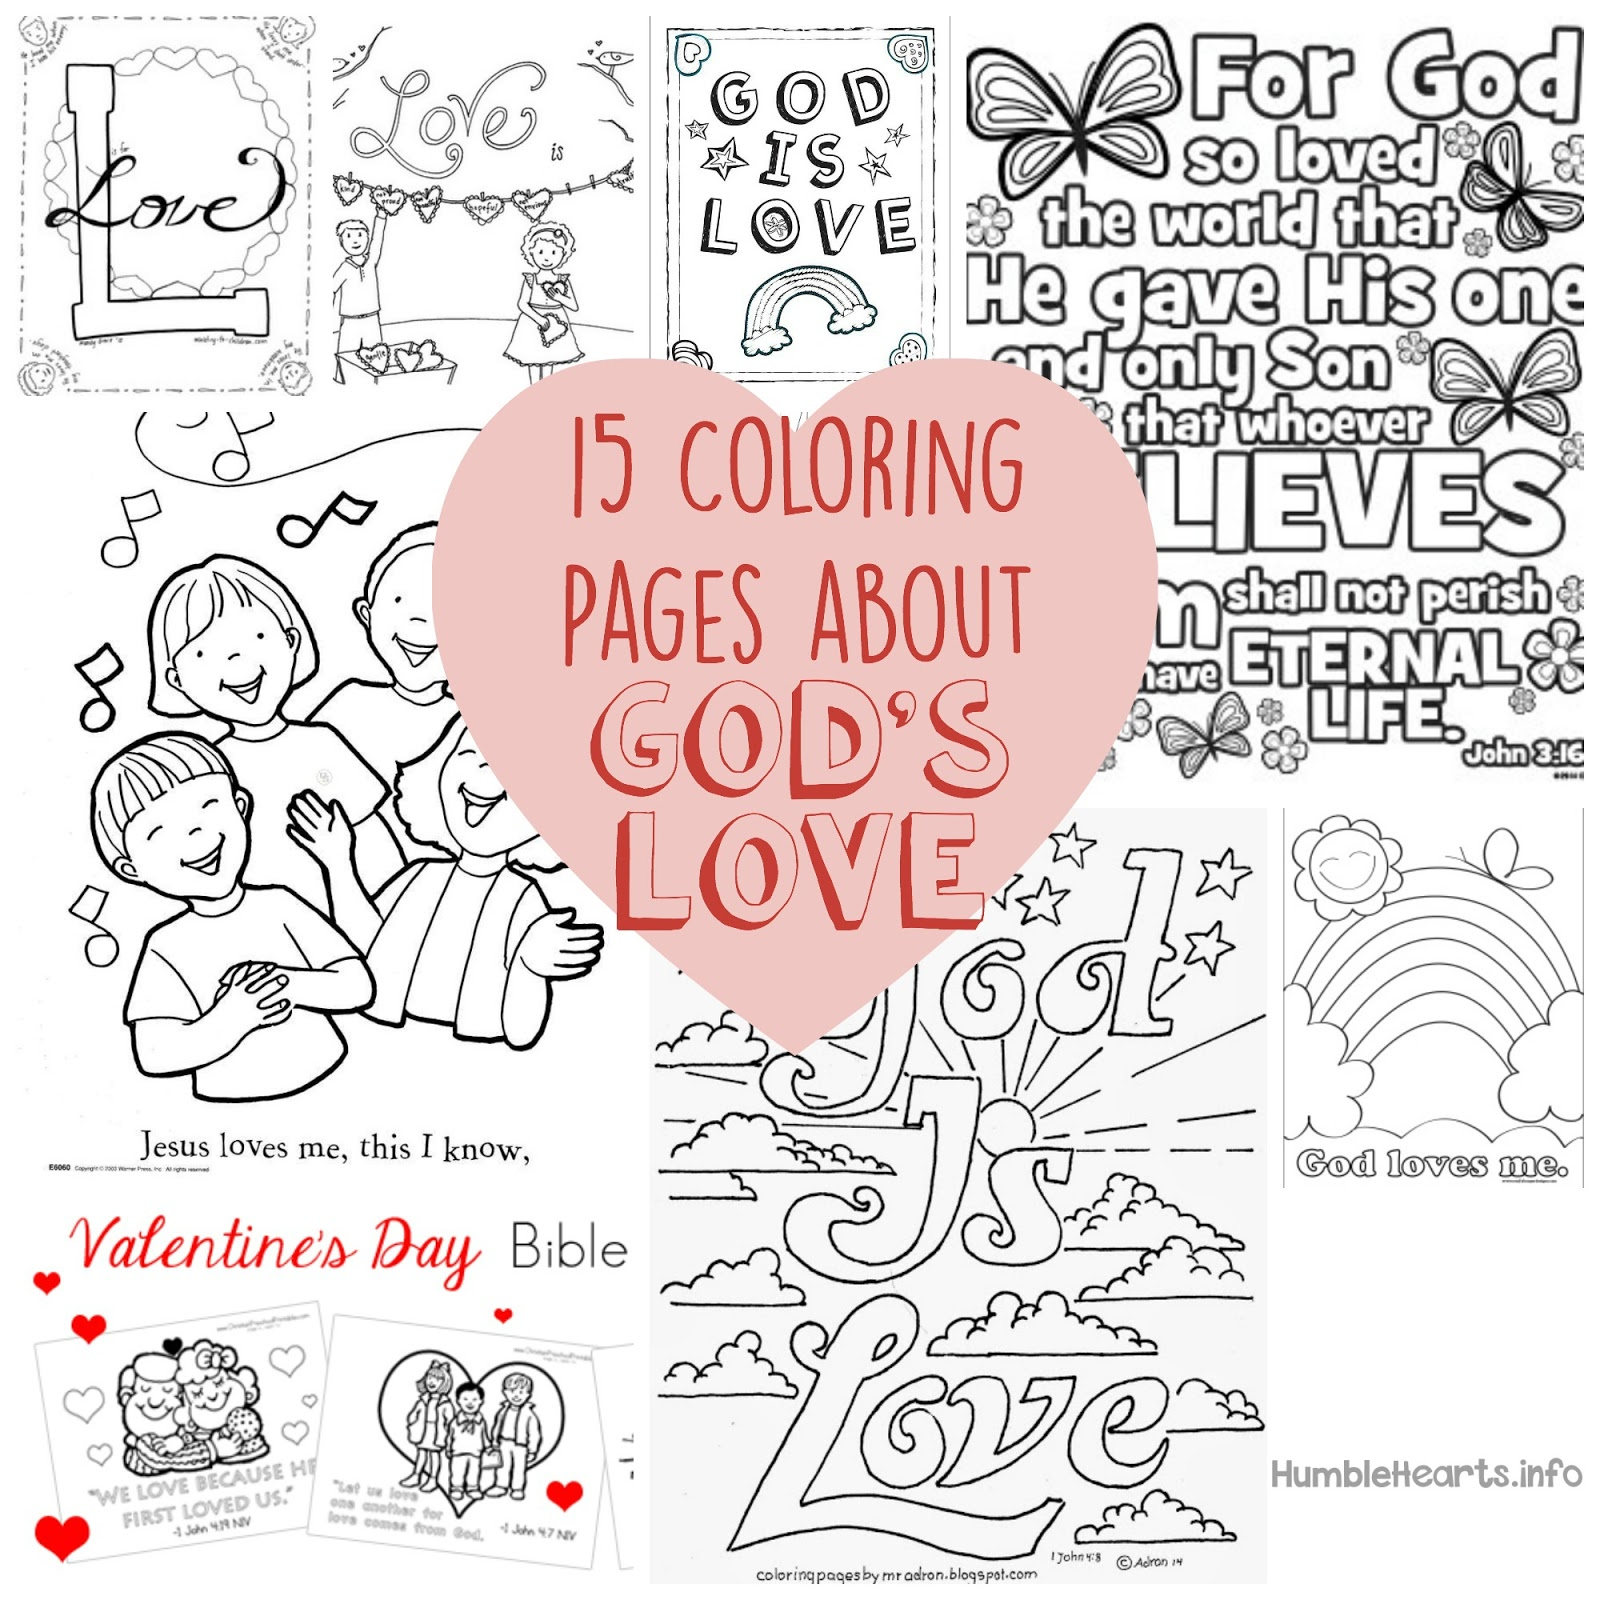 Coloring pages for john 9 - 15 Coloring Pages About God S Love Short And Sweet